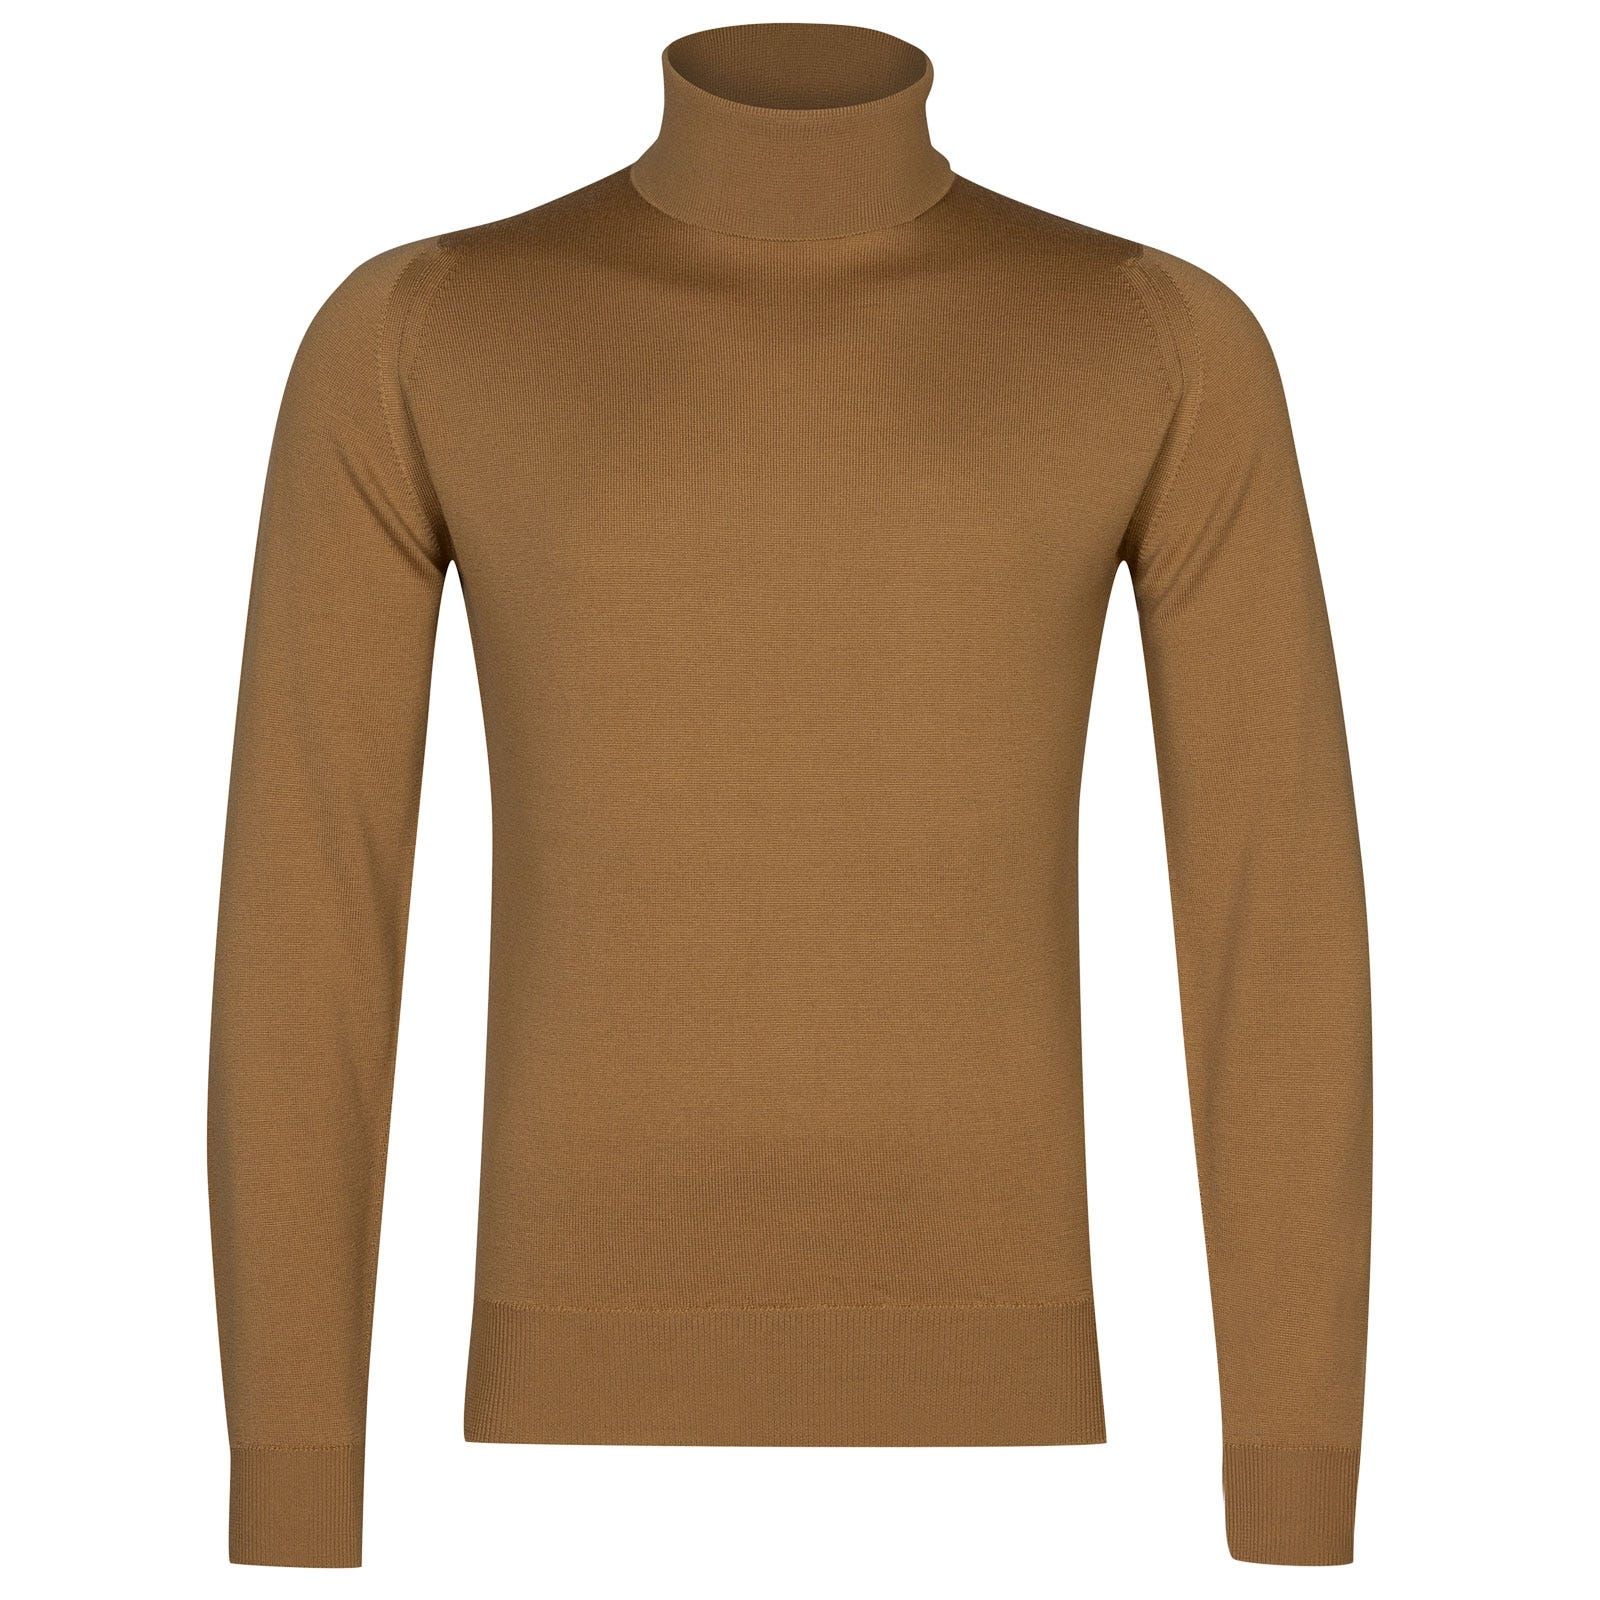 John Smedley Connell Merino Wool Pullover in Camel-S